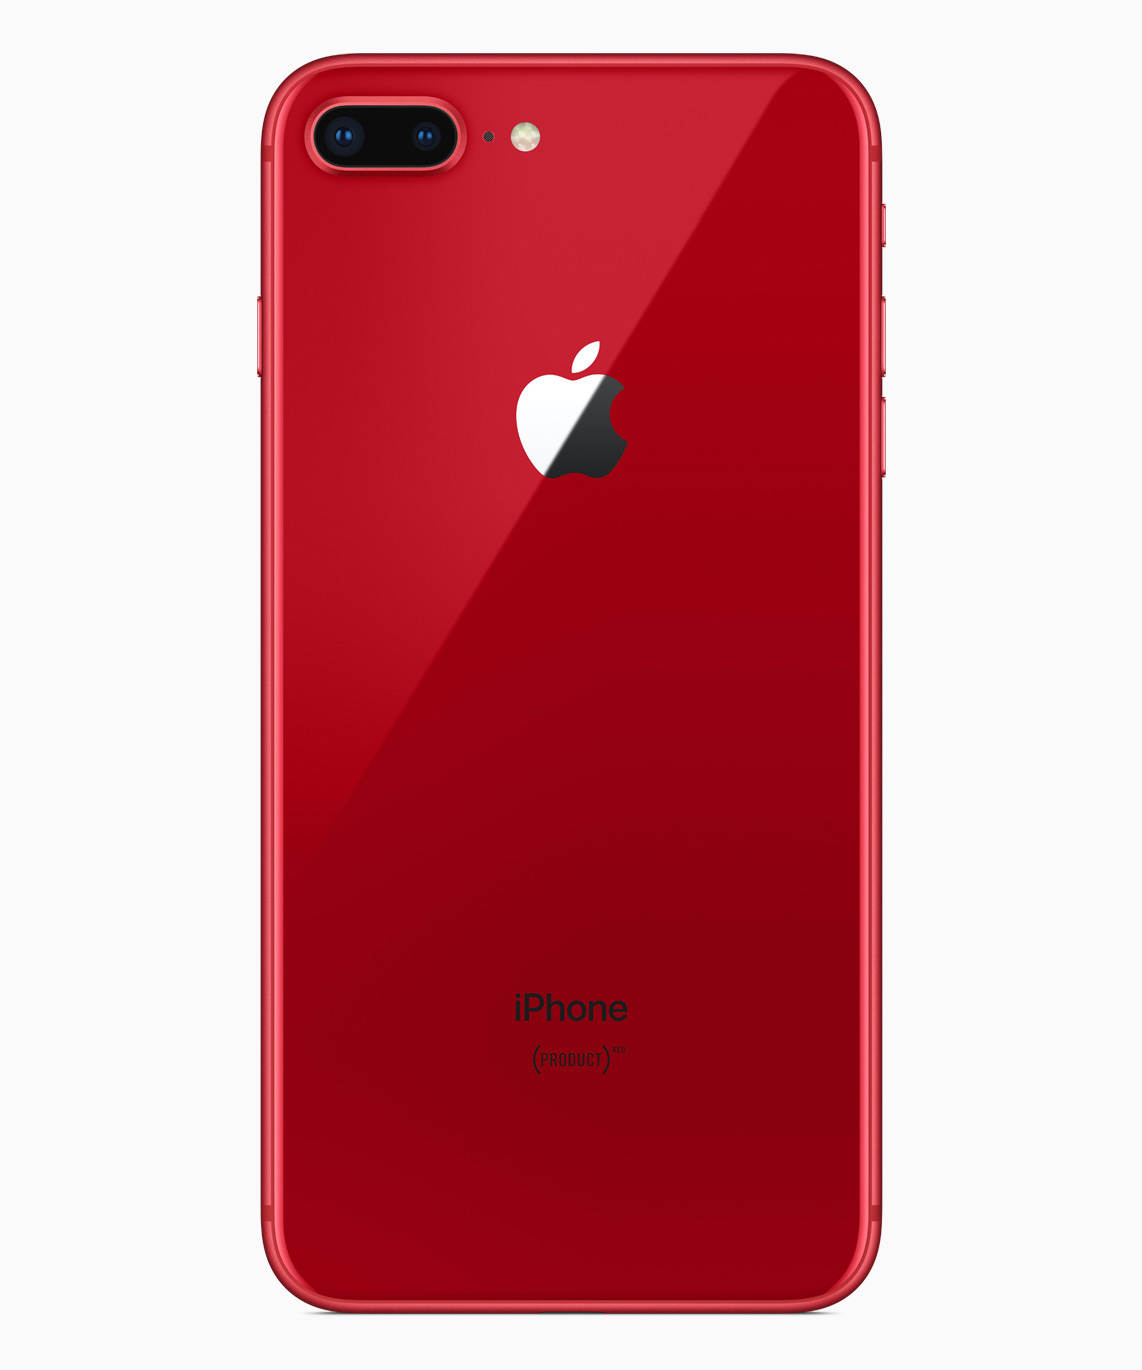 iphone8plus_product_red_back_041018